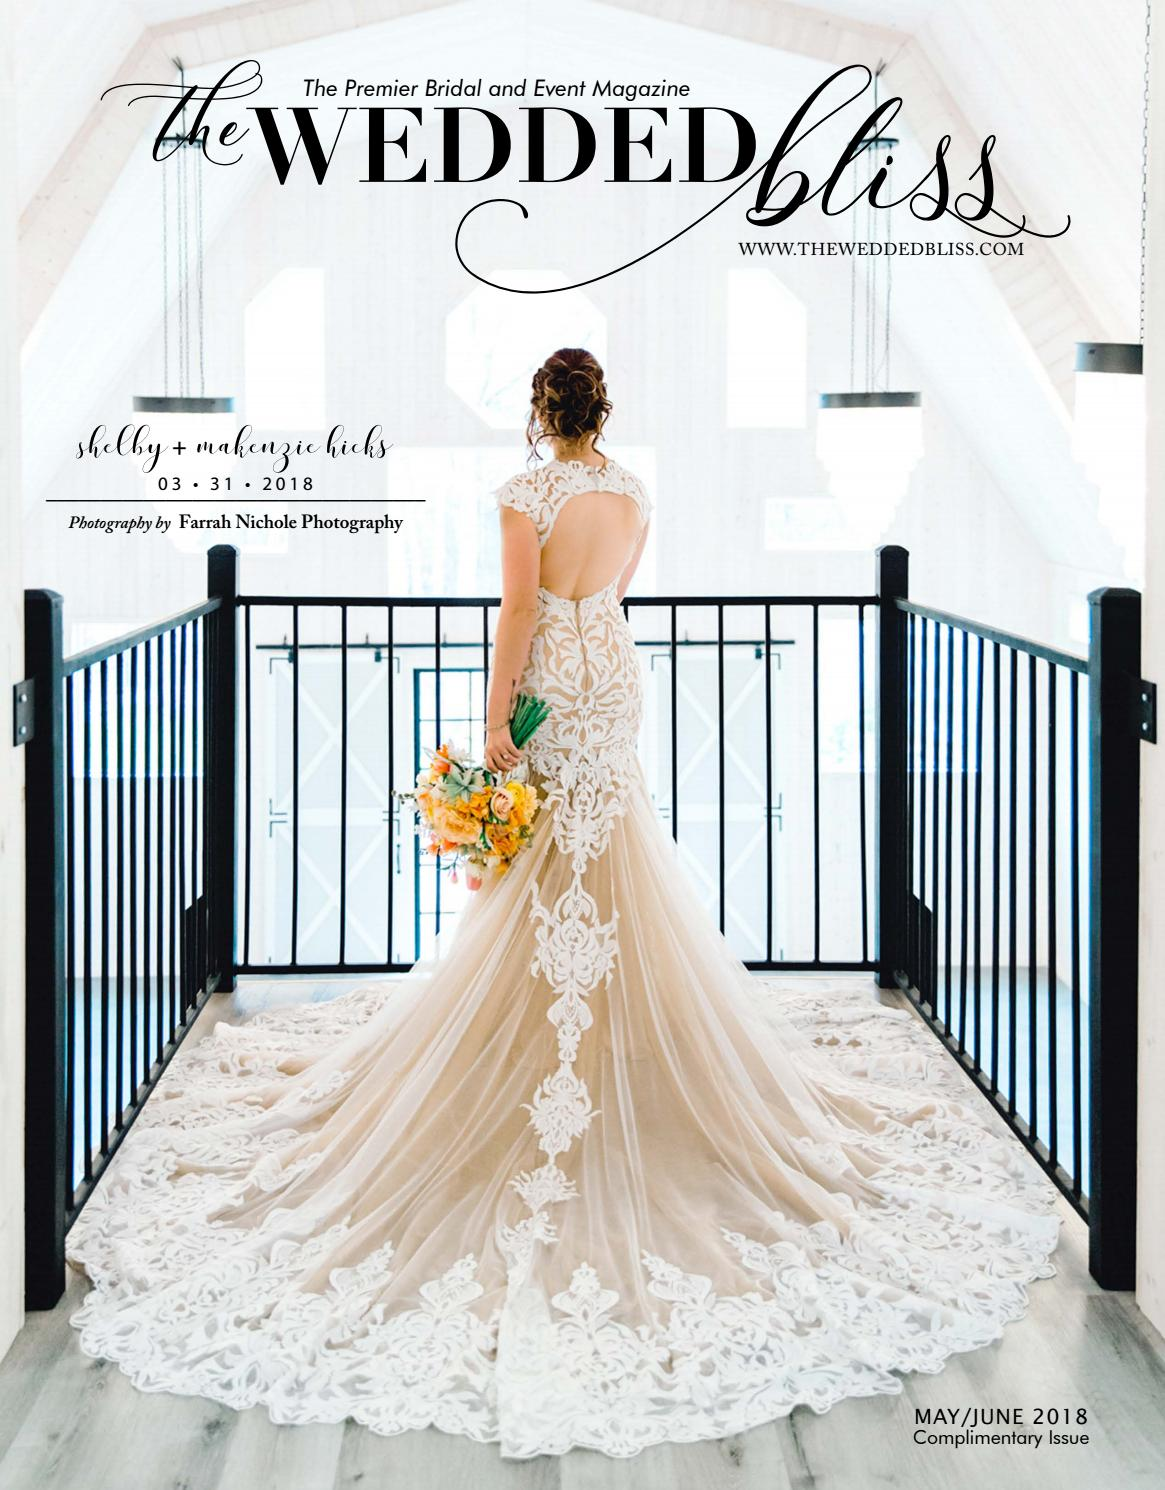 The Wedded Bliss - May/June 2018 by The Wedded Bliss - issuu